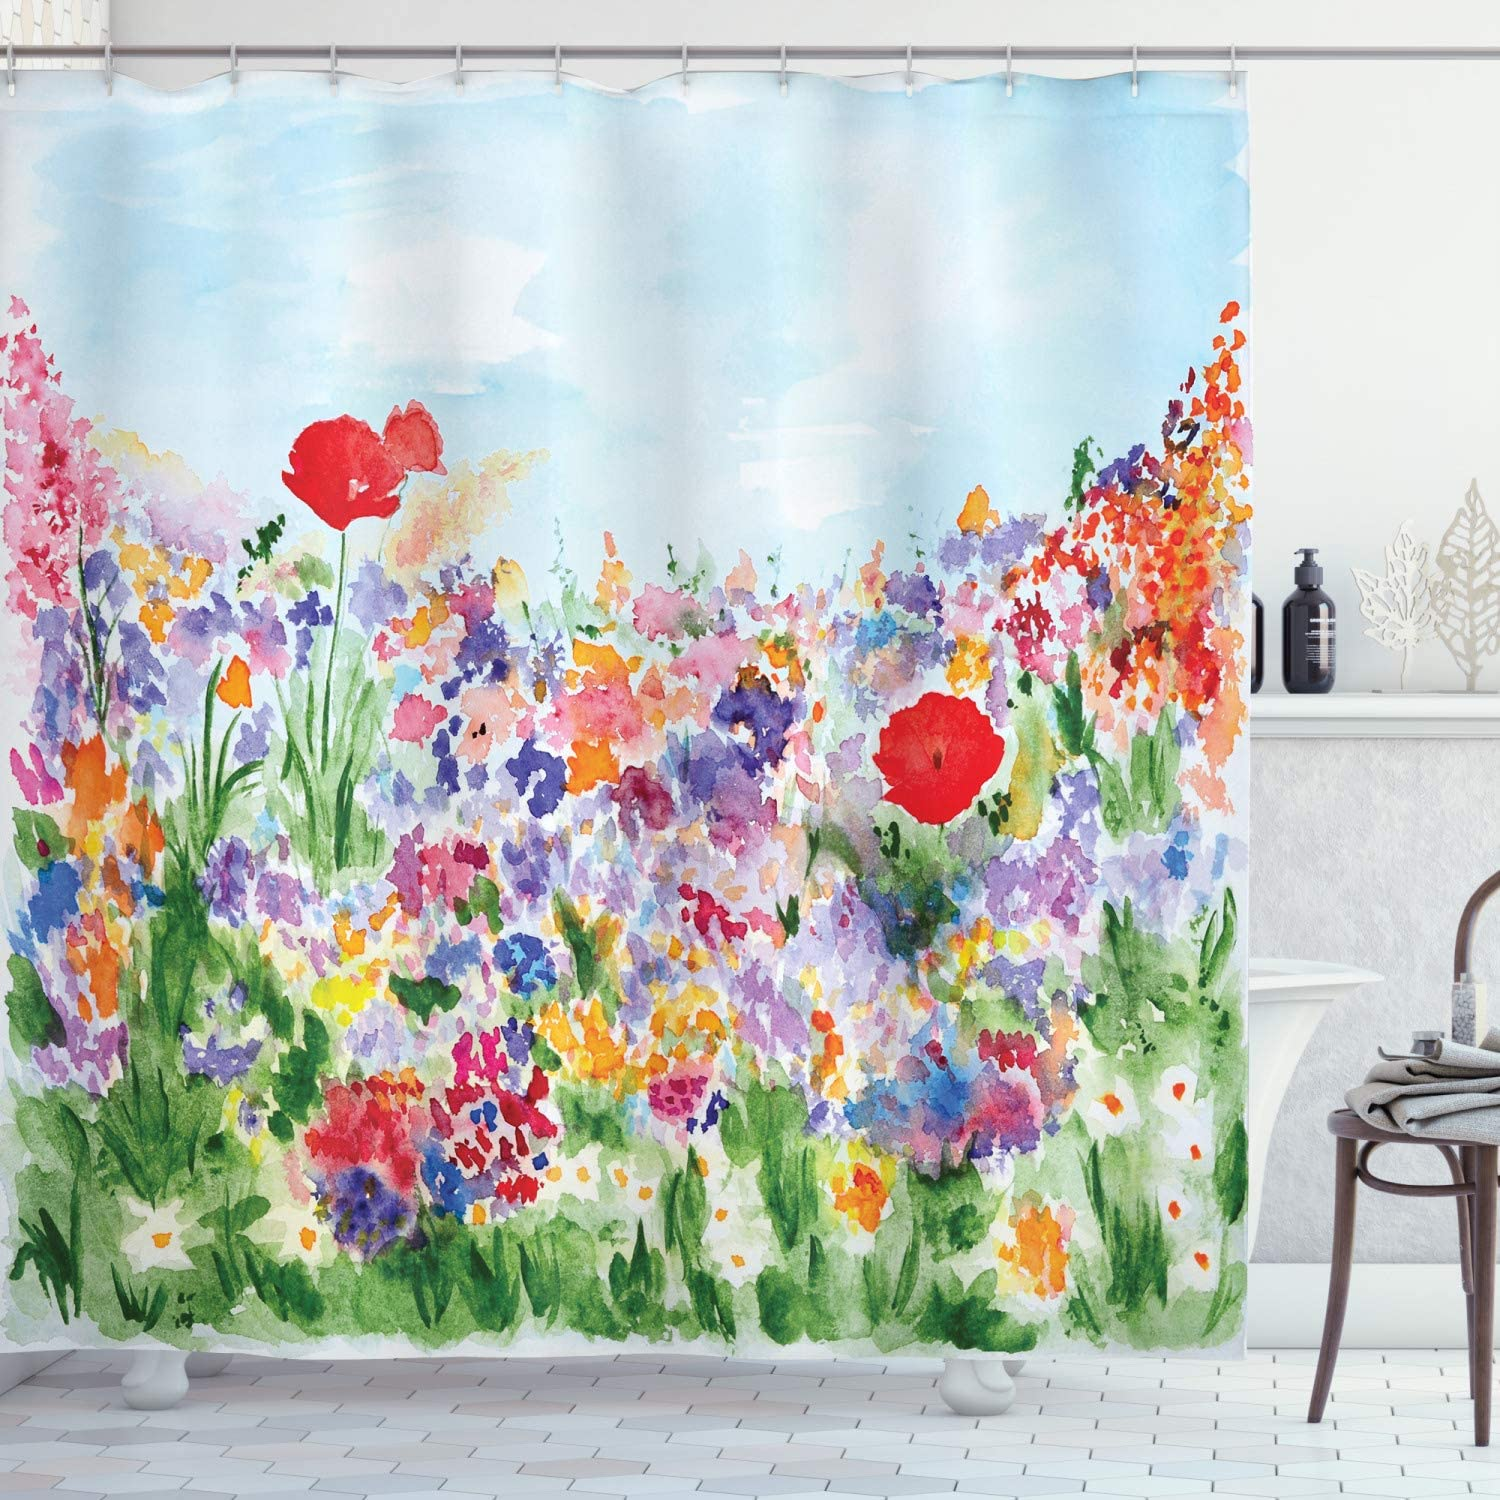 Ambesonne Watercolor Flower Shower Curtain, Floral Summer Garden with Grass and Blooms Love Illustration Print, Cloth Fabric Bathroom Decor Set with Hooks, 70